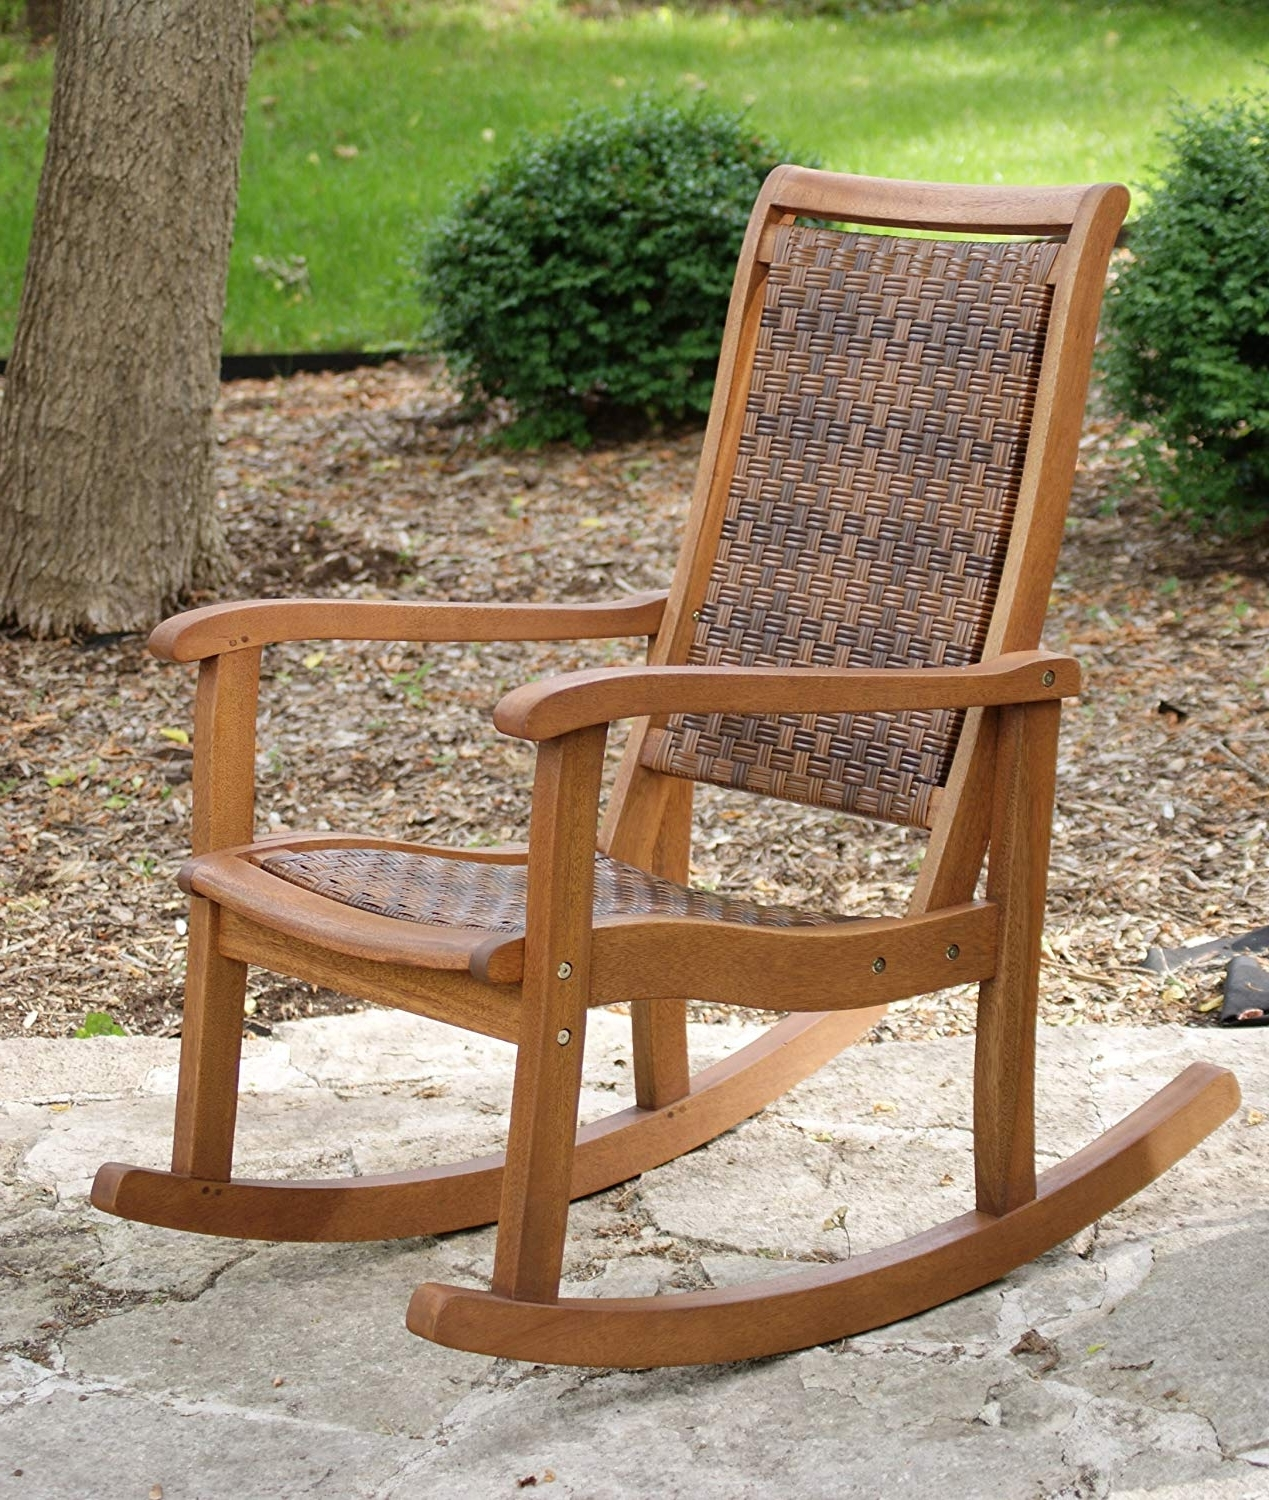 Amazon : Outdoor Interiors 21095Rc All Weather Wicker Mocha And Pertaining To Latest Outdoor Wicker Rocking Chairs (View 2 of 15)